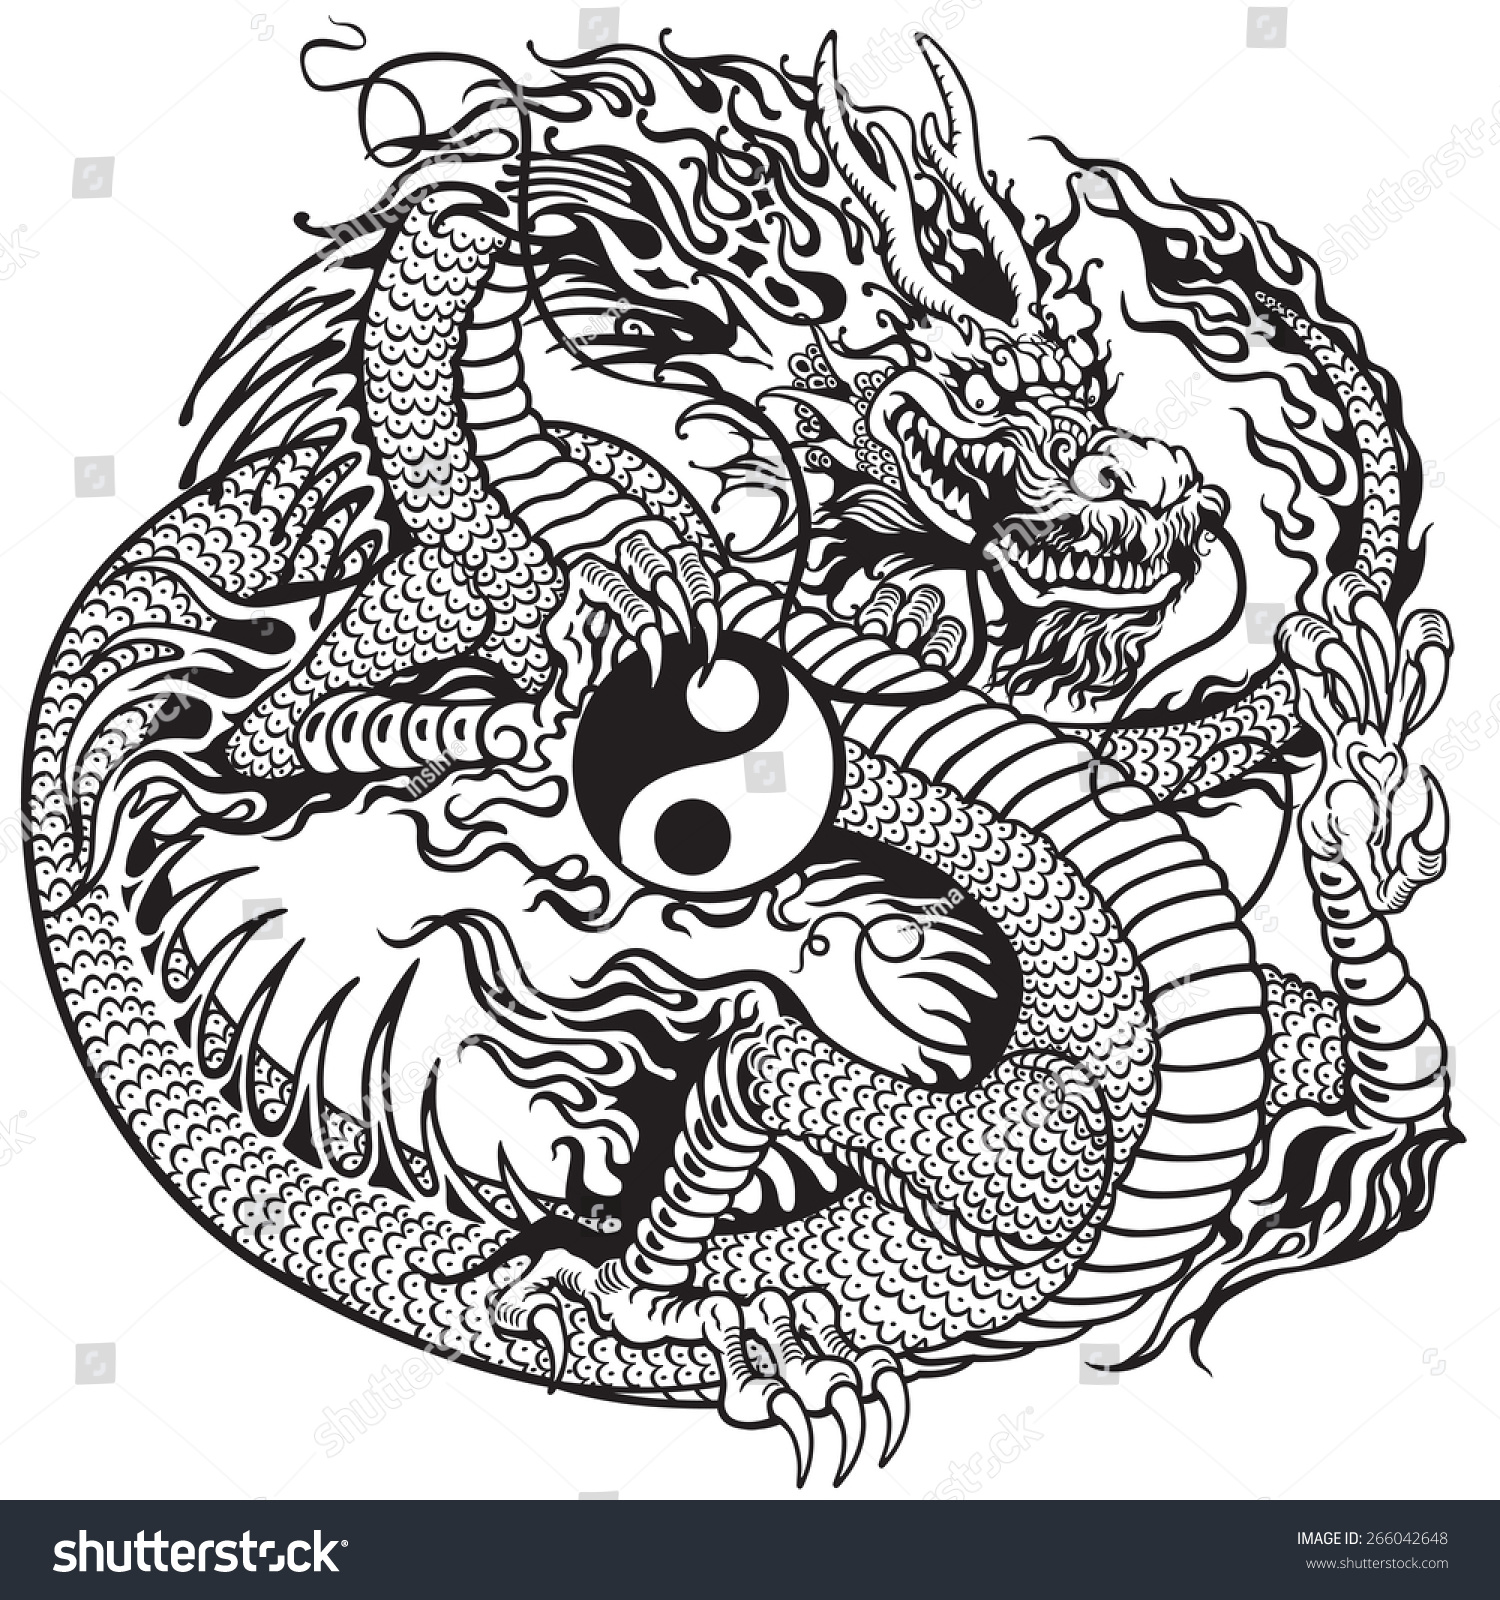 Royalty Free Chinese Dragon Holding Yin Yang Symbol 266042648